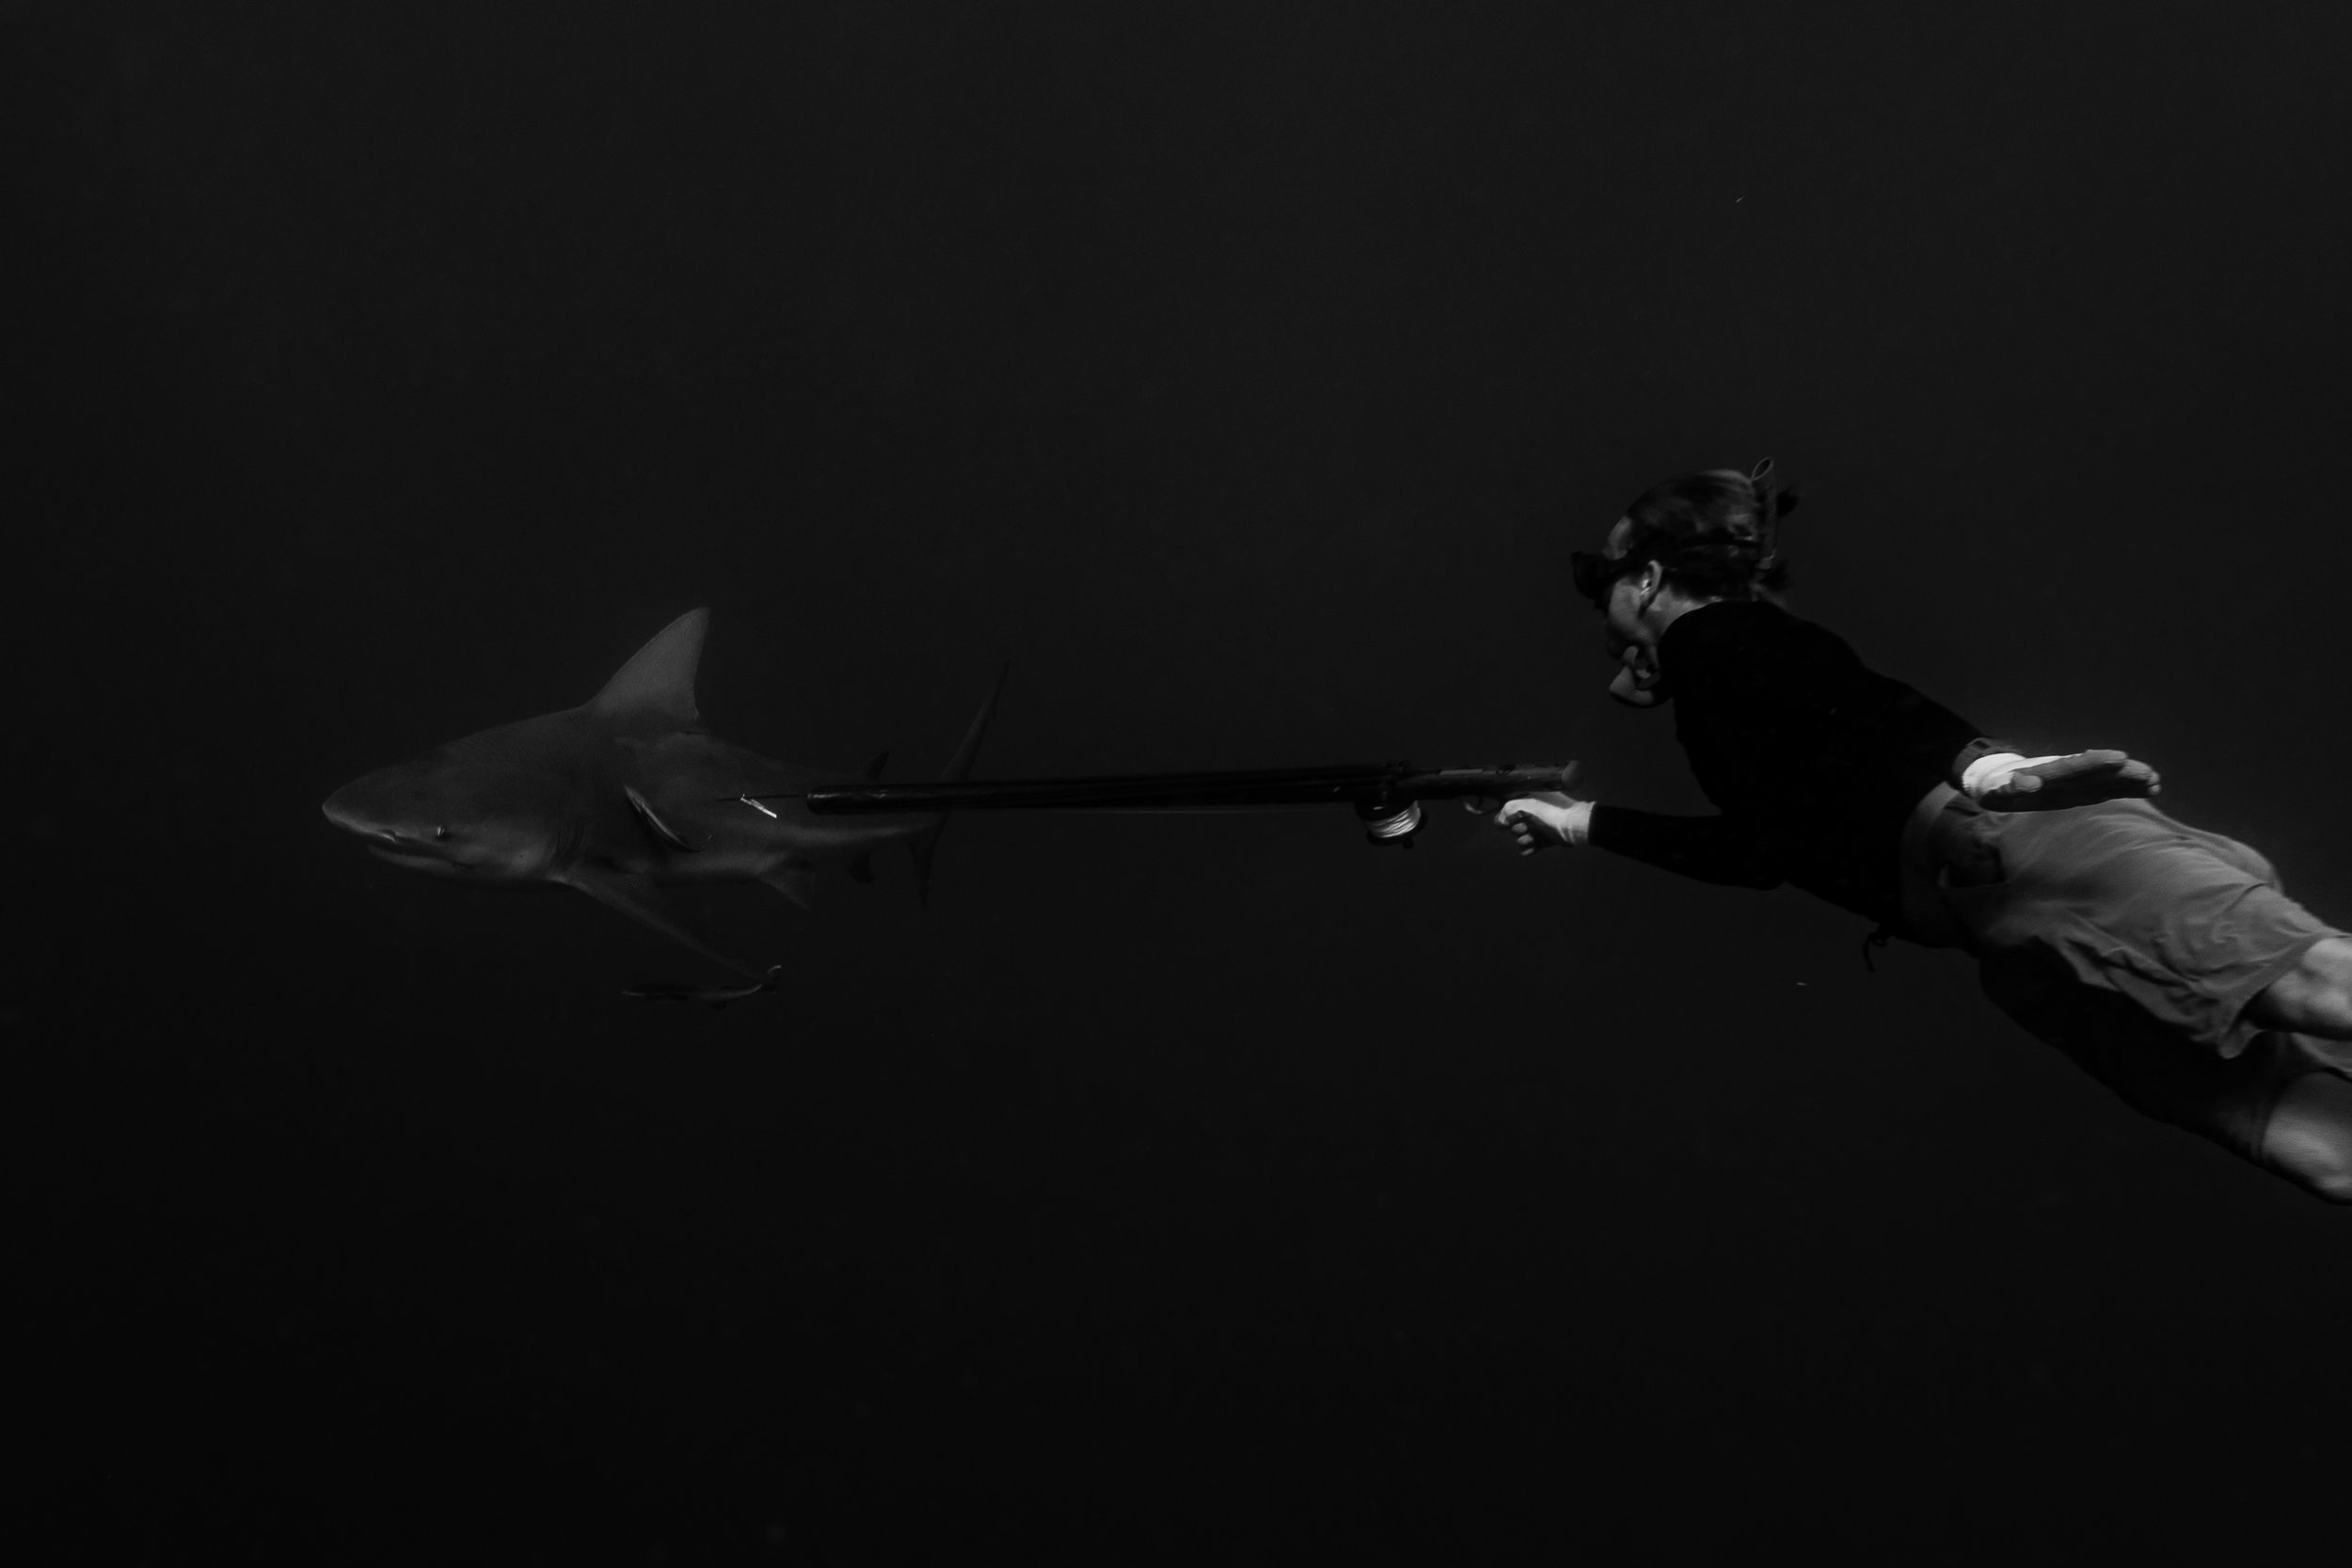 Sometimes the Bulls just want to take a closer look... Jacks experience shows as he stays calm and lets the shark know he's not what they want to mess with.